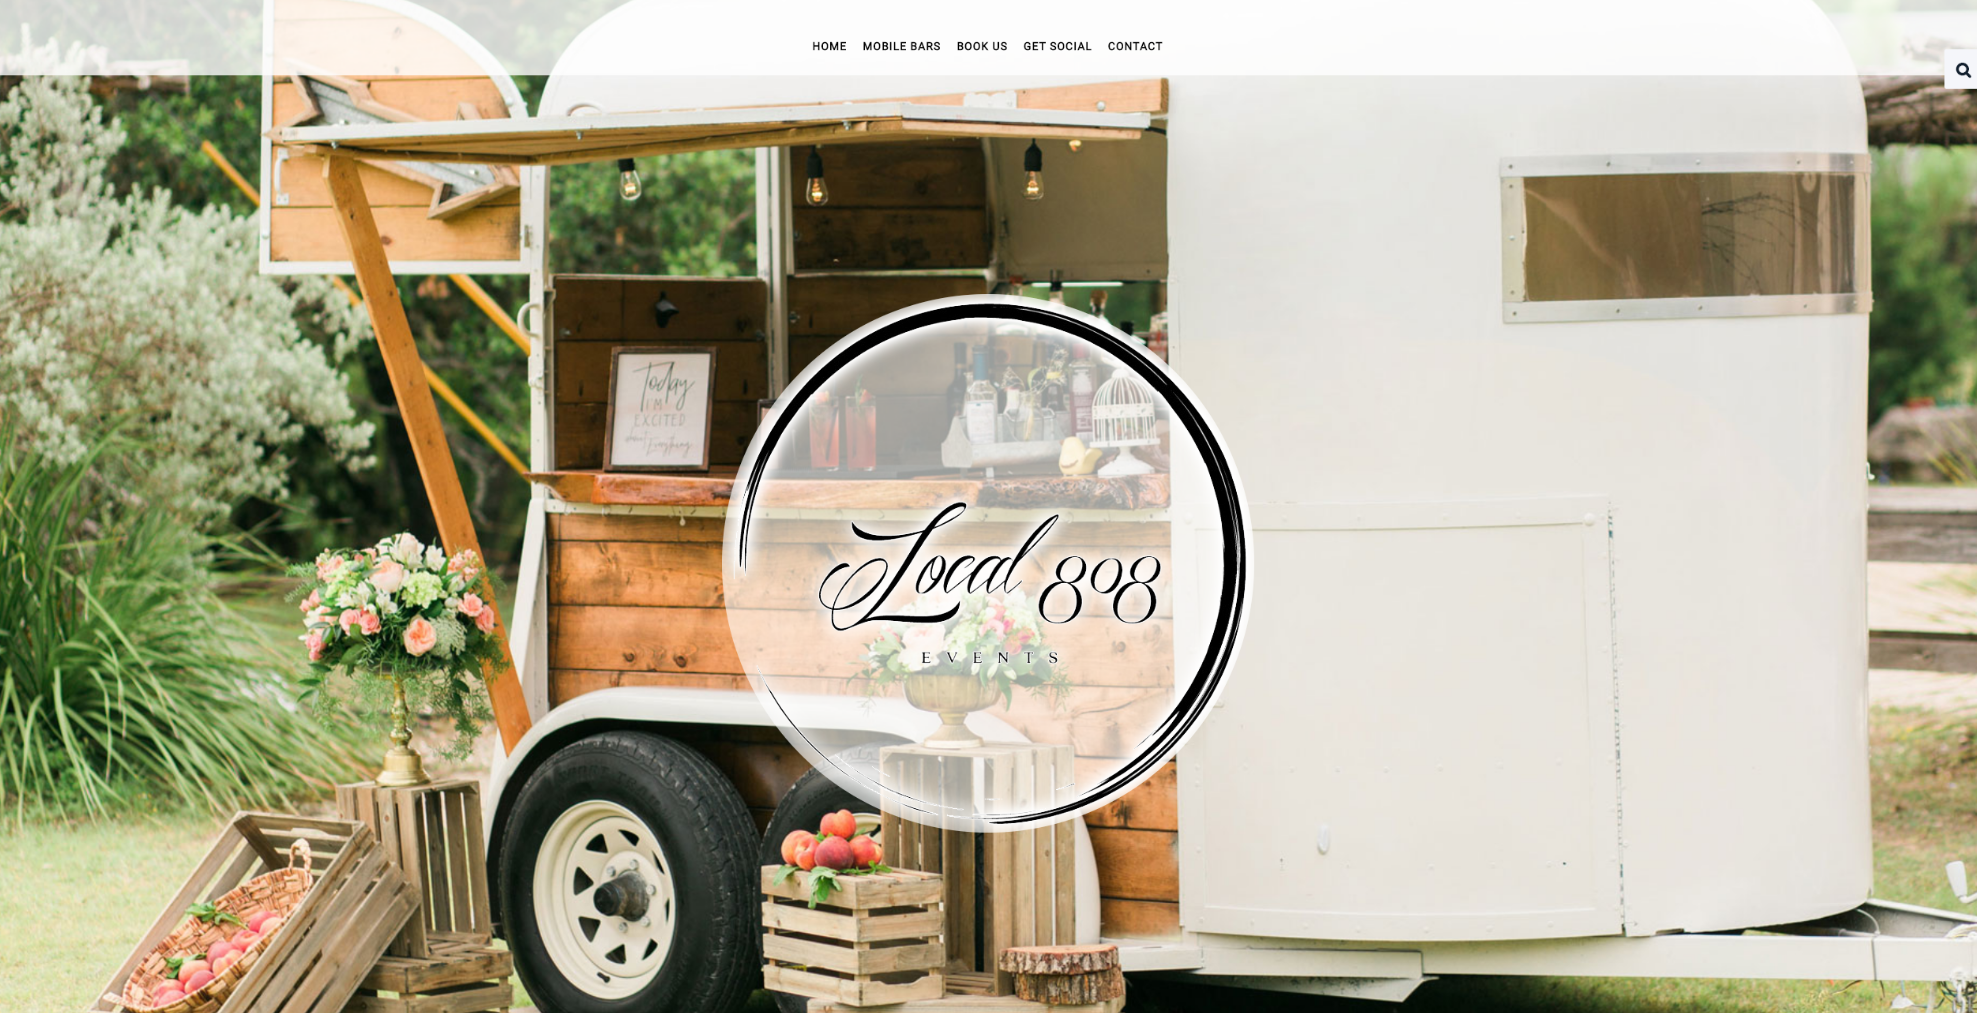 las vegas website development by 702 Pros LLC for Local 808 Events | Justin Young